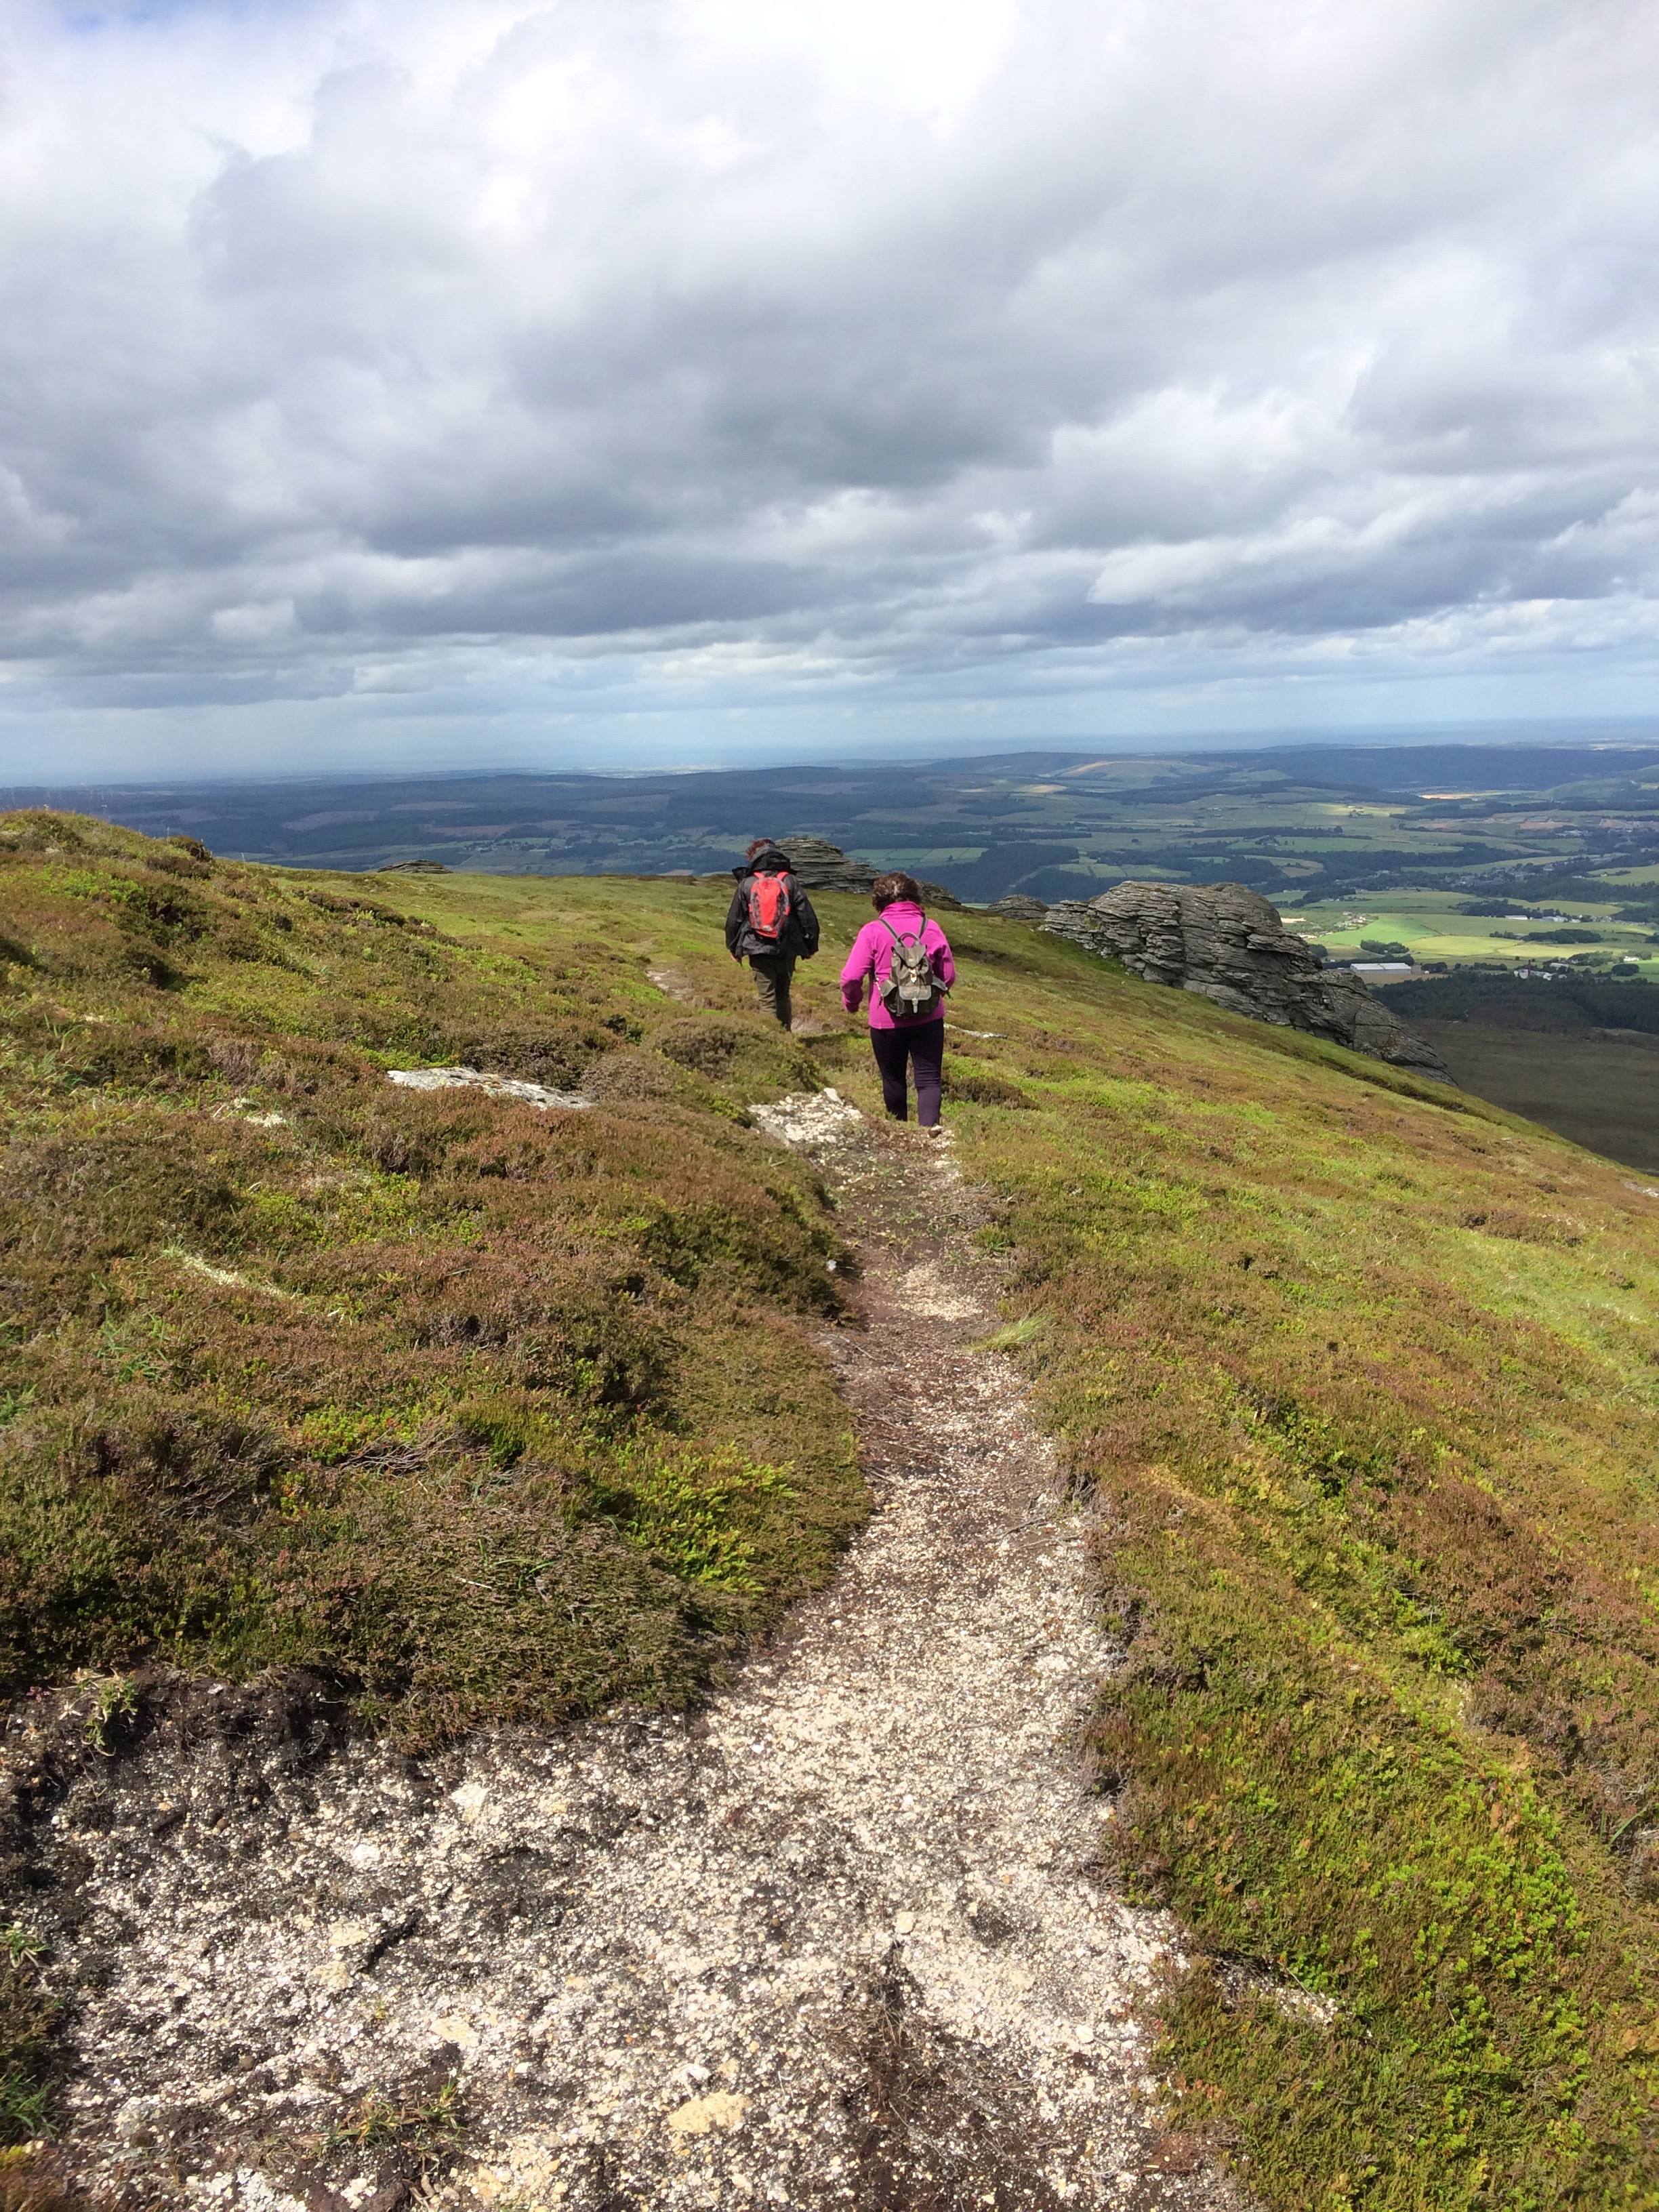 Whether you walk, cycle or climb, Moray Speyside offers something for almost everyone!